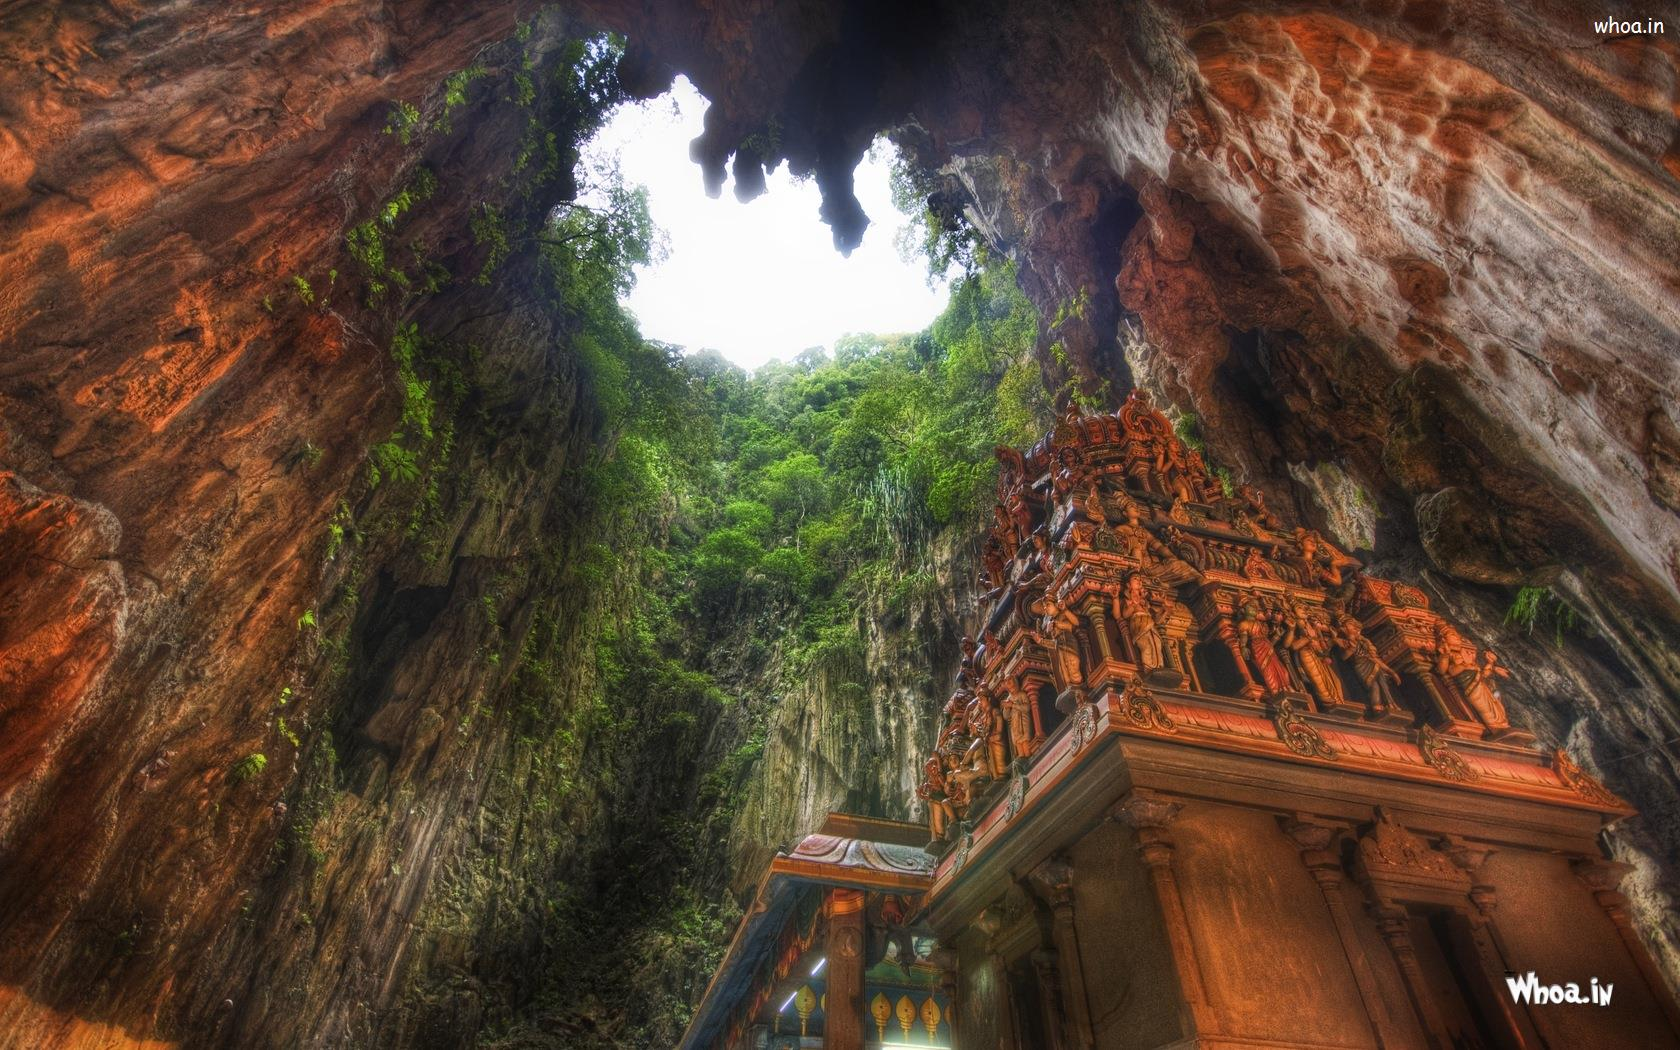 A Shrine For The Hindu God Murugan In The Middle Of A Large Cavern